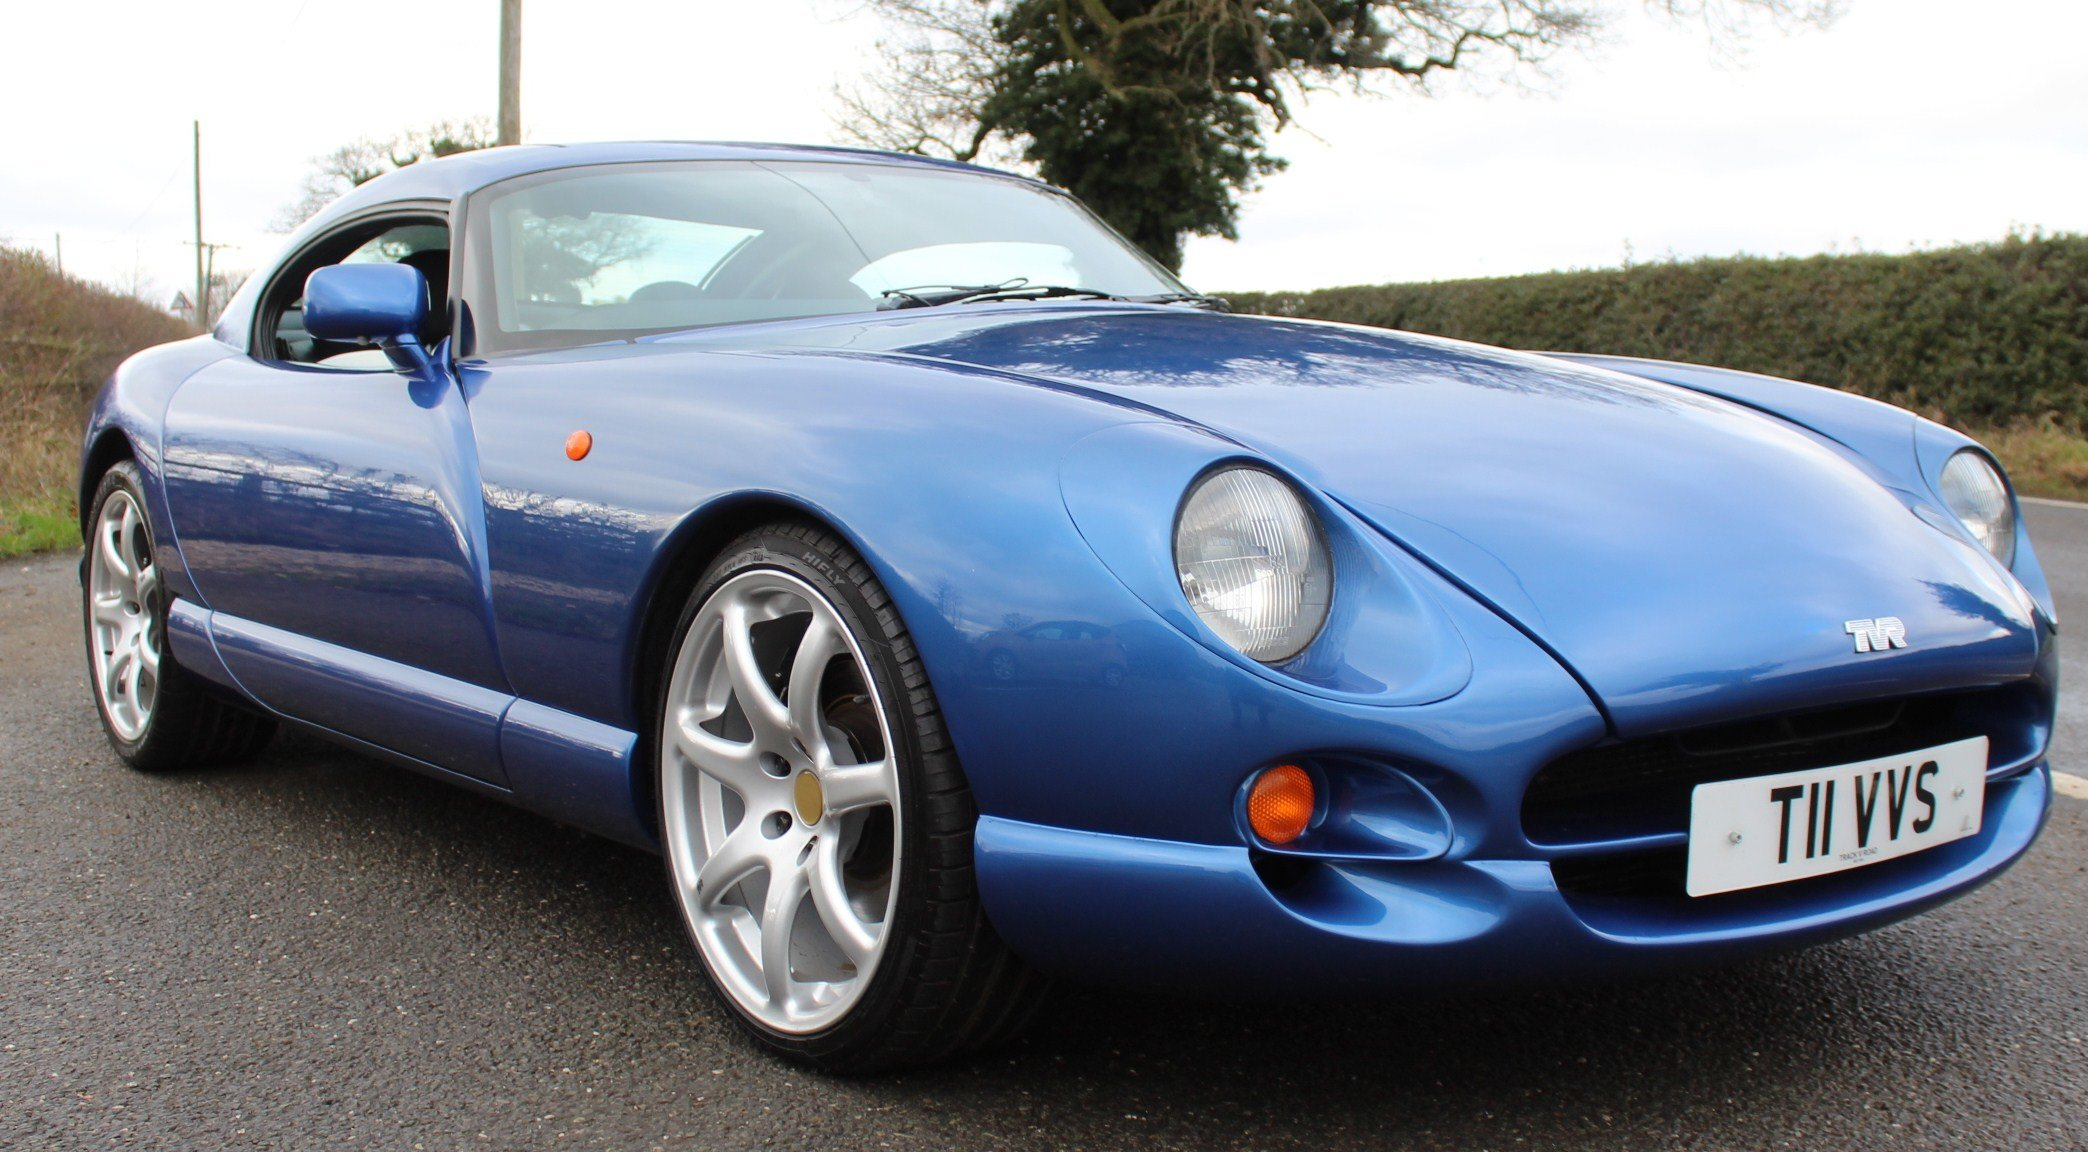 1999 TVR Cerbera 4.0 Litre Super Six 33,000 miles FSH SOLD (picture 2 of 6)